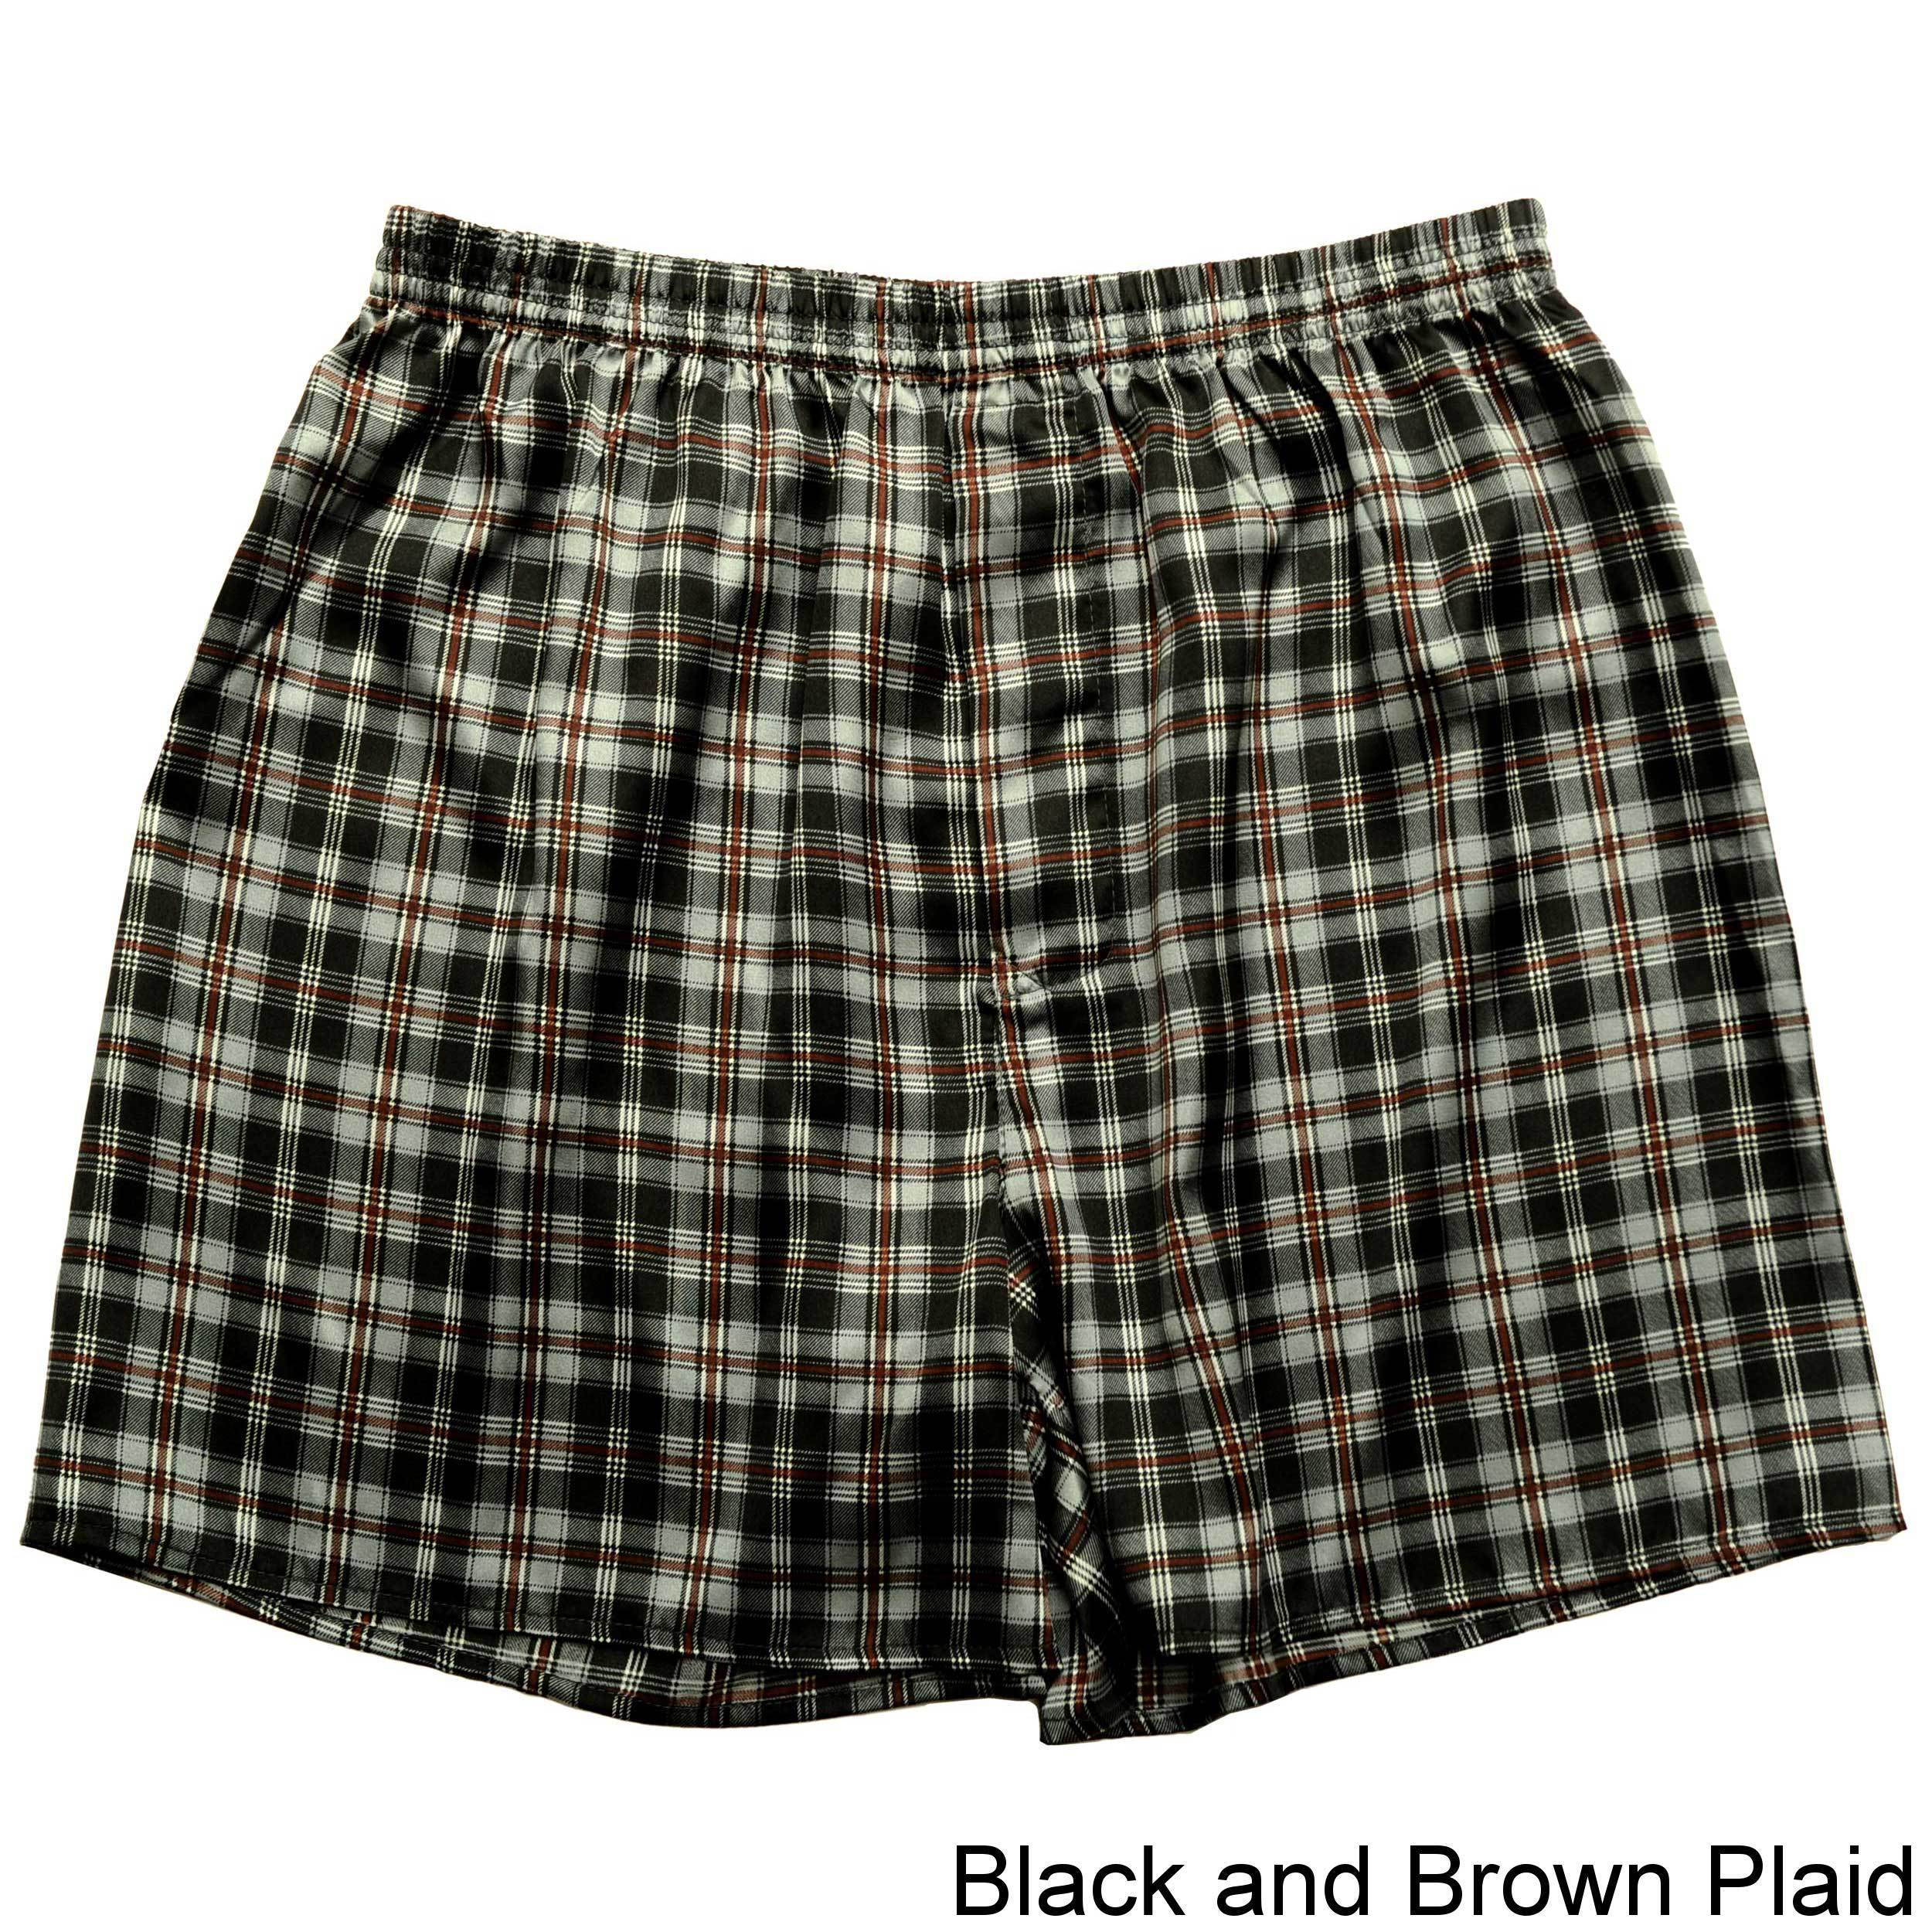 Mens 2-Pack Boxer Briefs Polyester Underwear Trunk Underwear with Green Brown Plaid Design